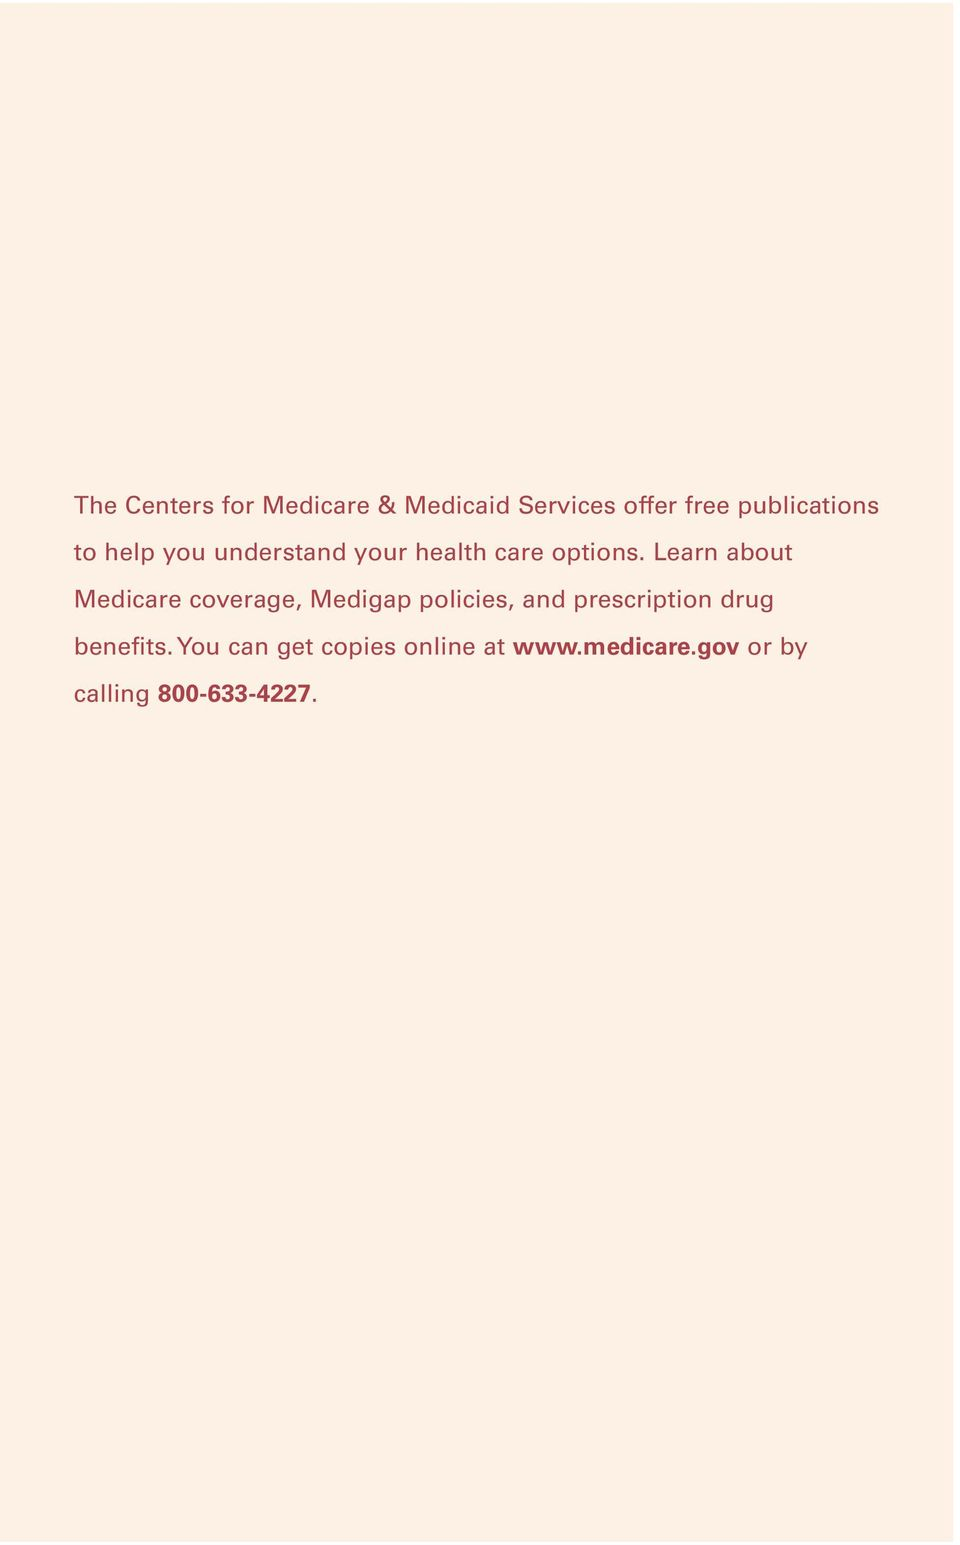 Learn about Medicare coverage, Medigap policies, and prescription